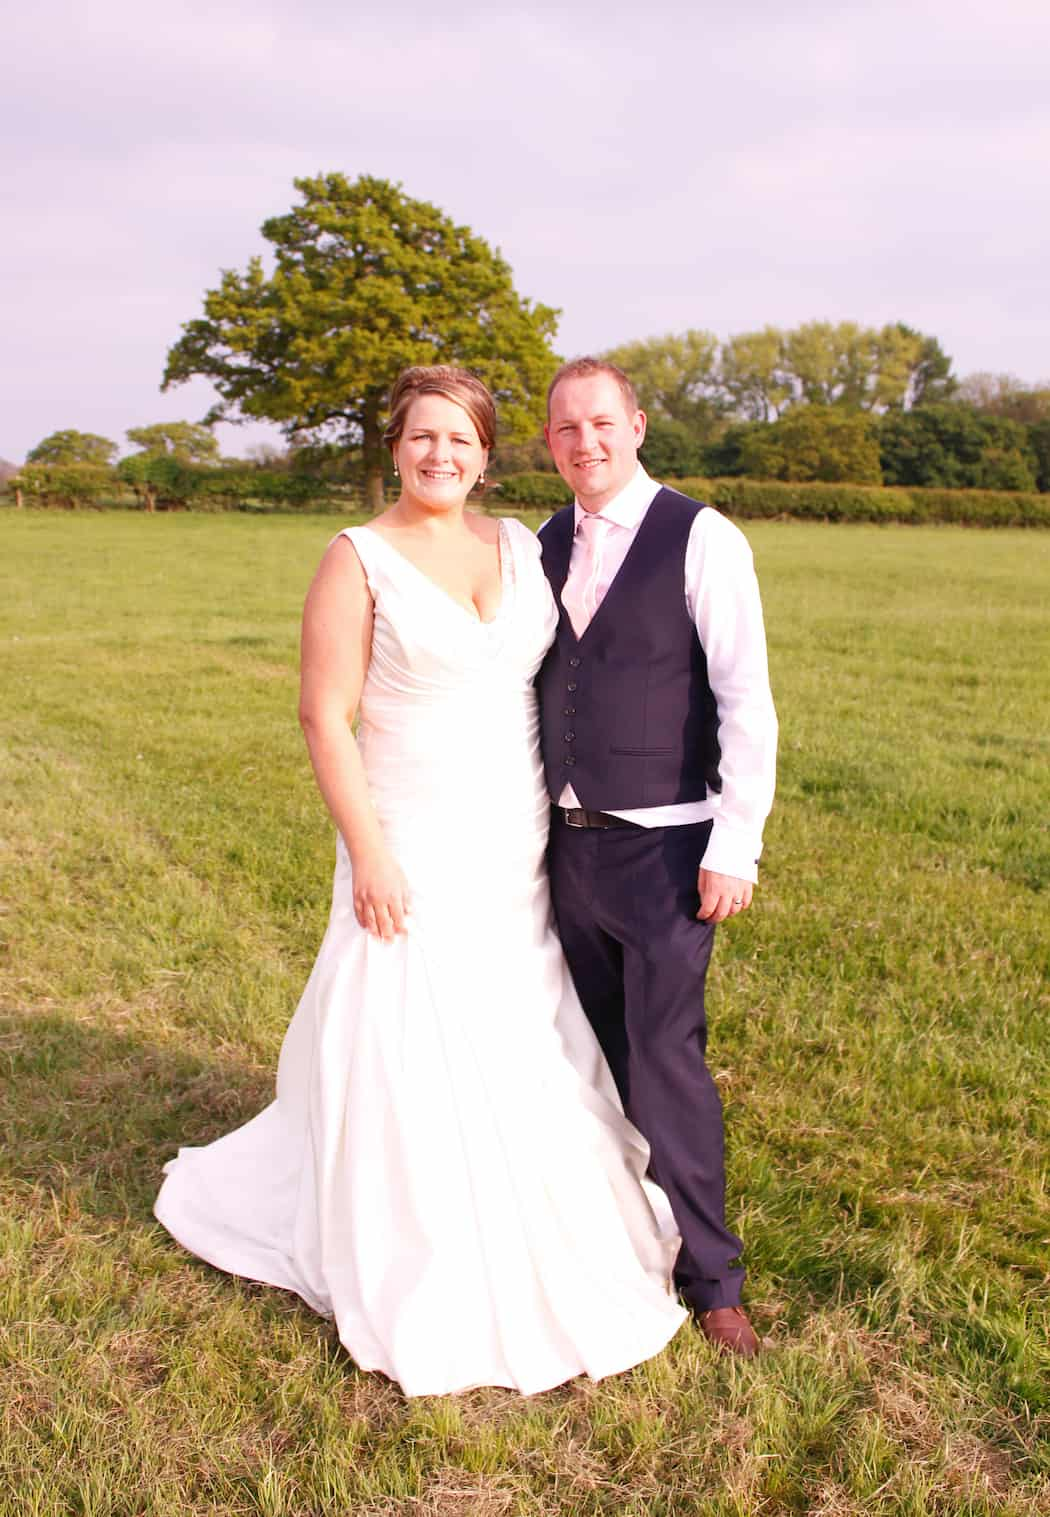 Beth and Stephens sami tipi wedding with 3 giant hat tipis